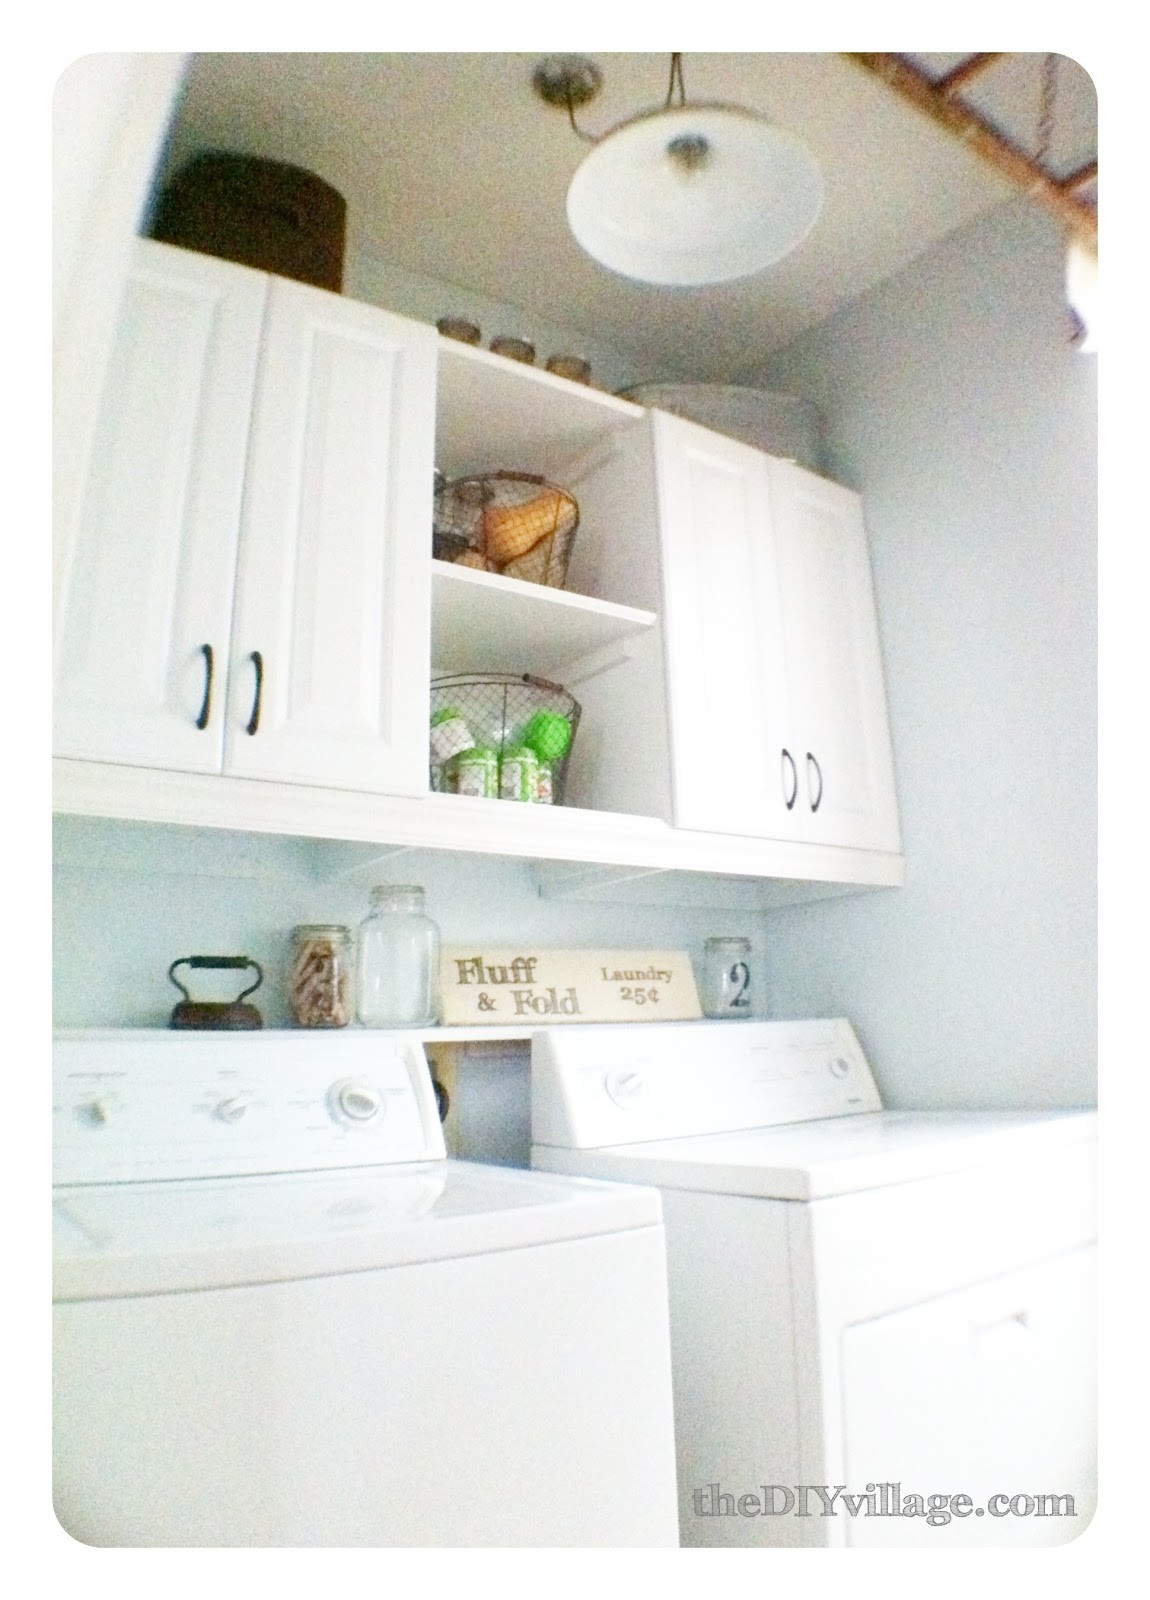 Best ideas about Laundry Room Shelf . Save or Pin Laundry Room Makeover the DIY village Now.